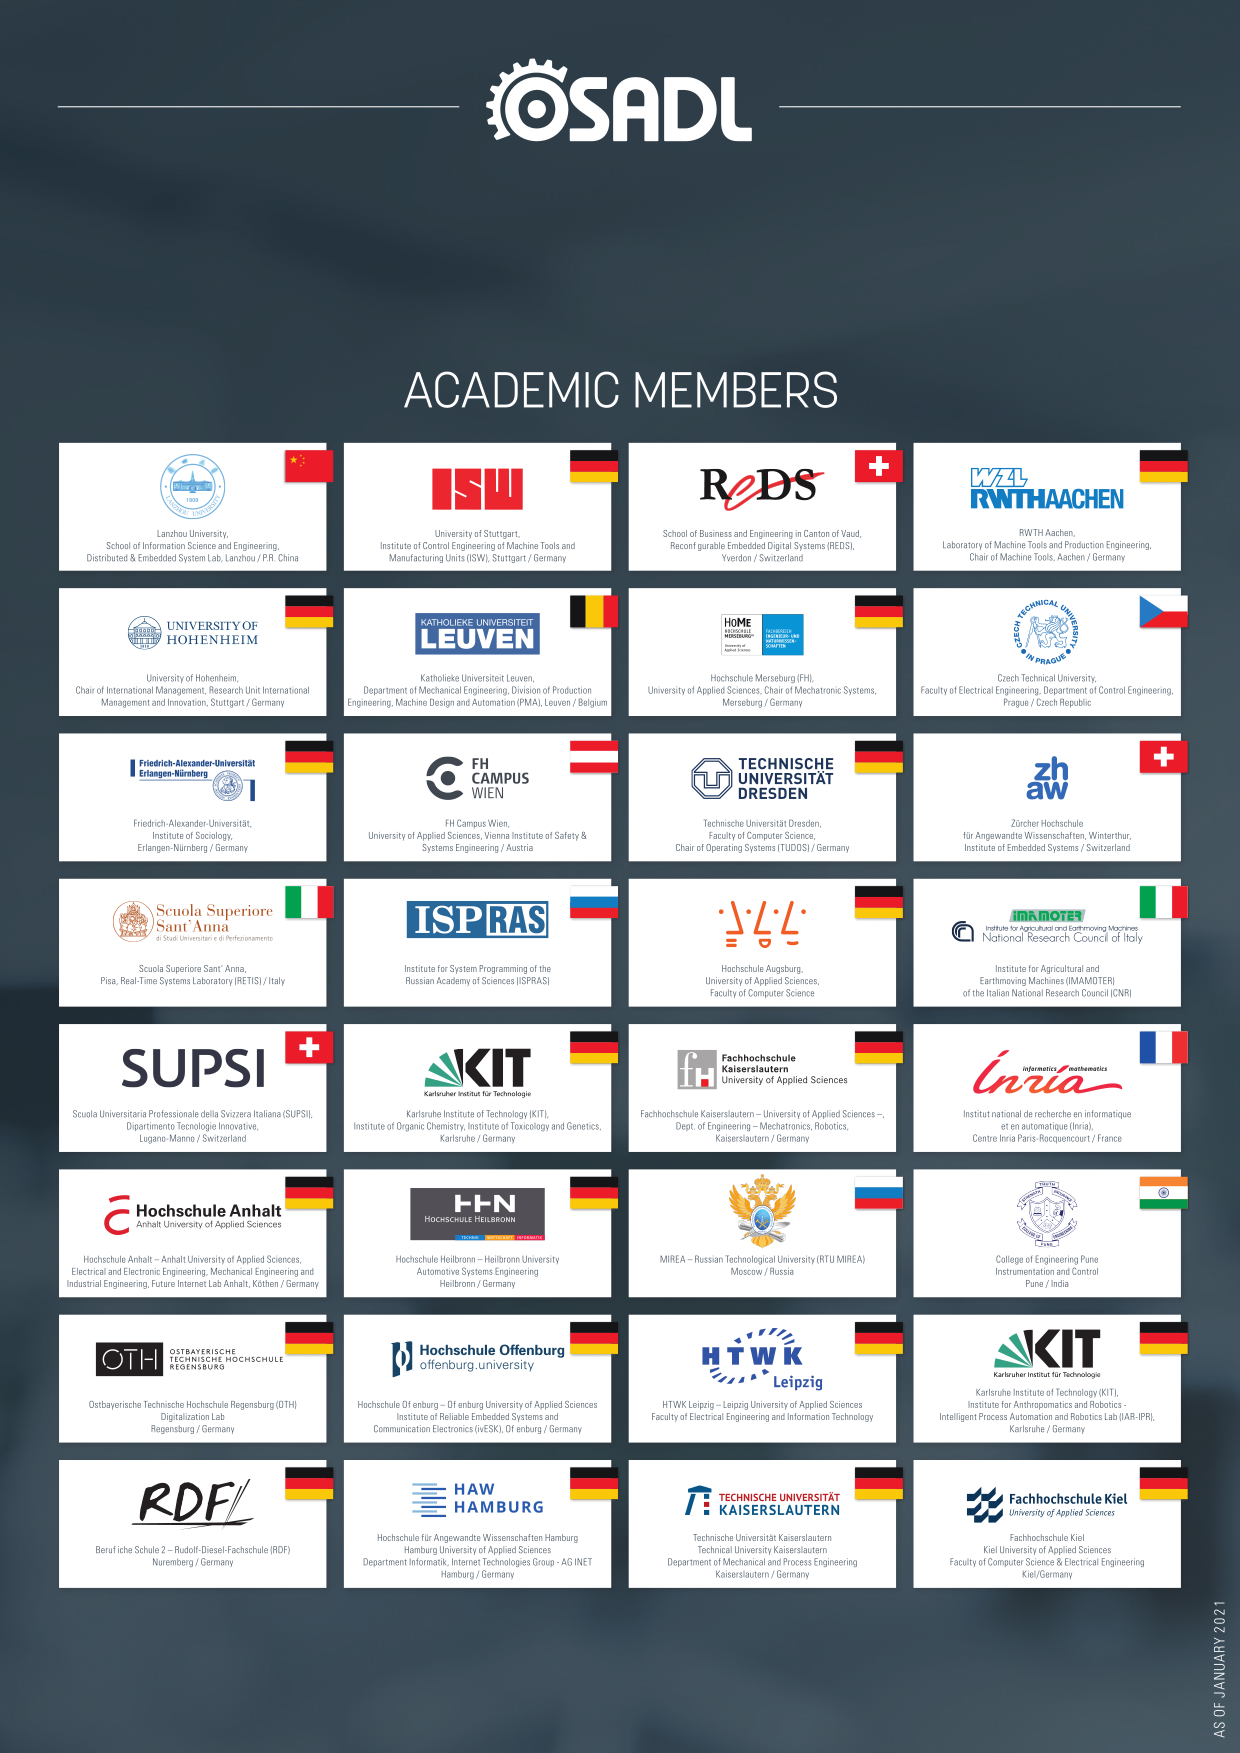 Poster of academic OSADL members